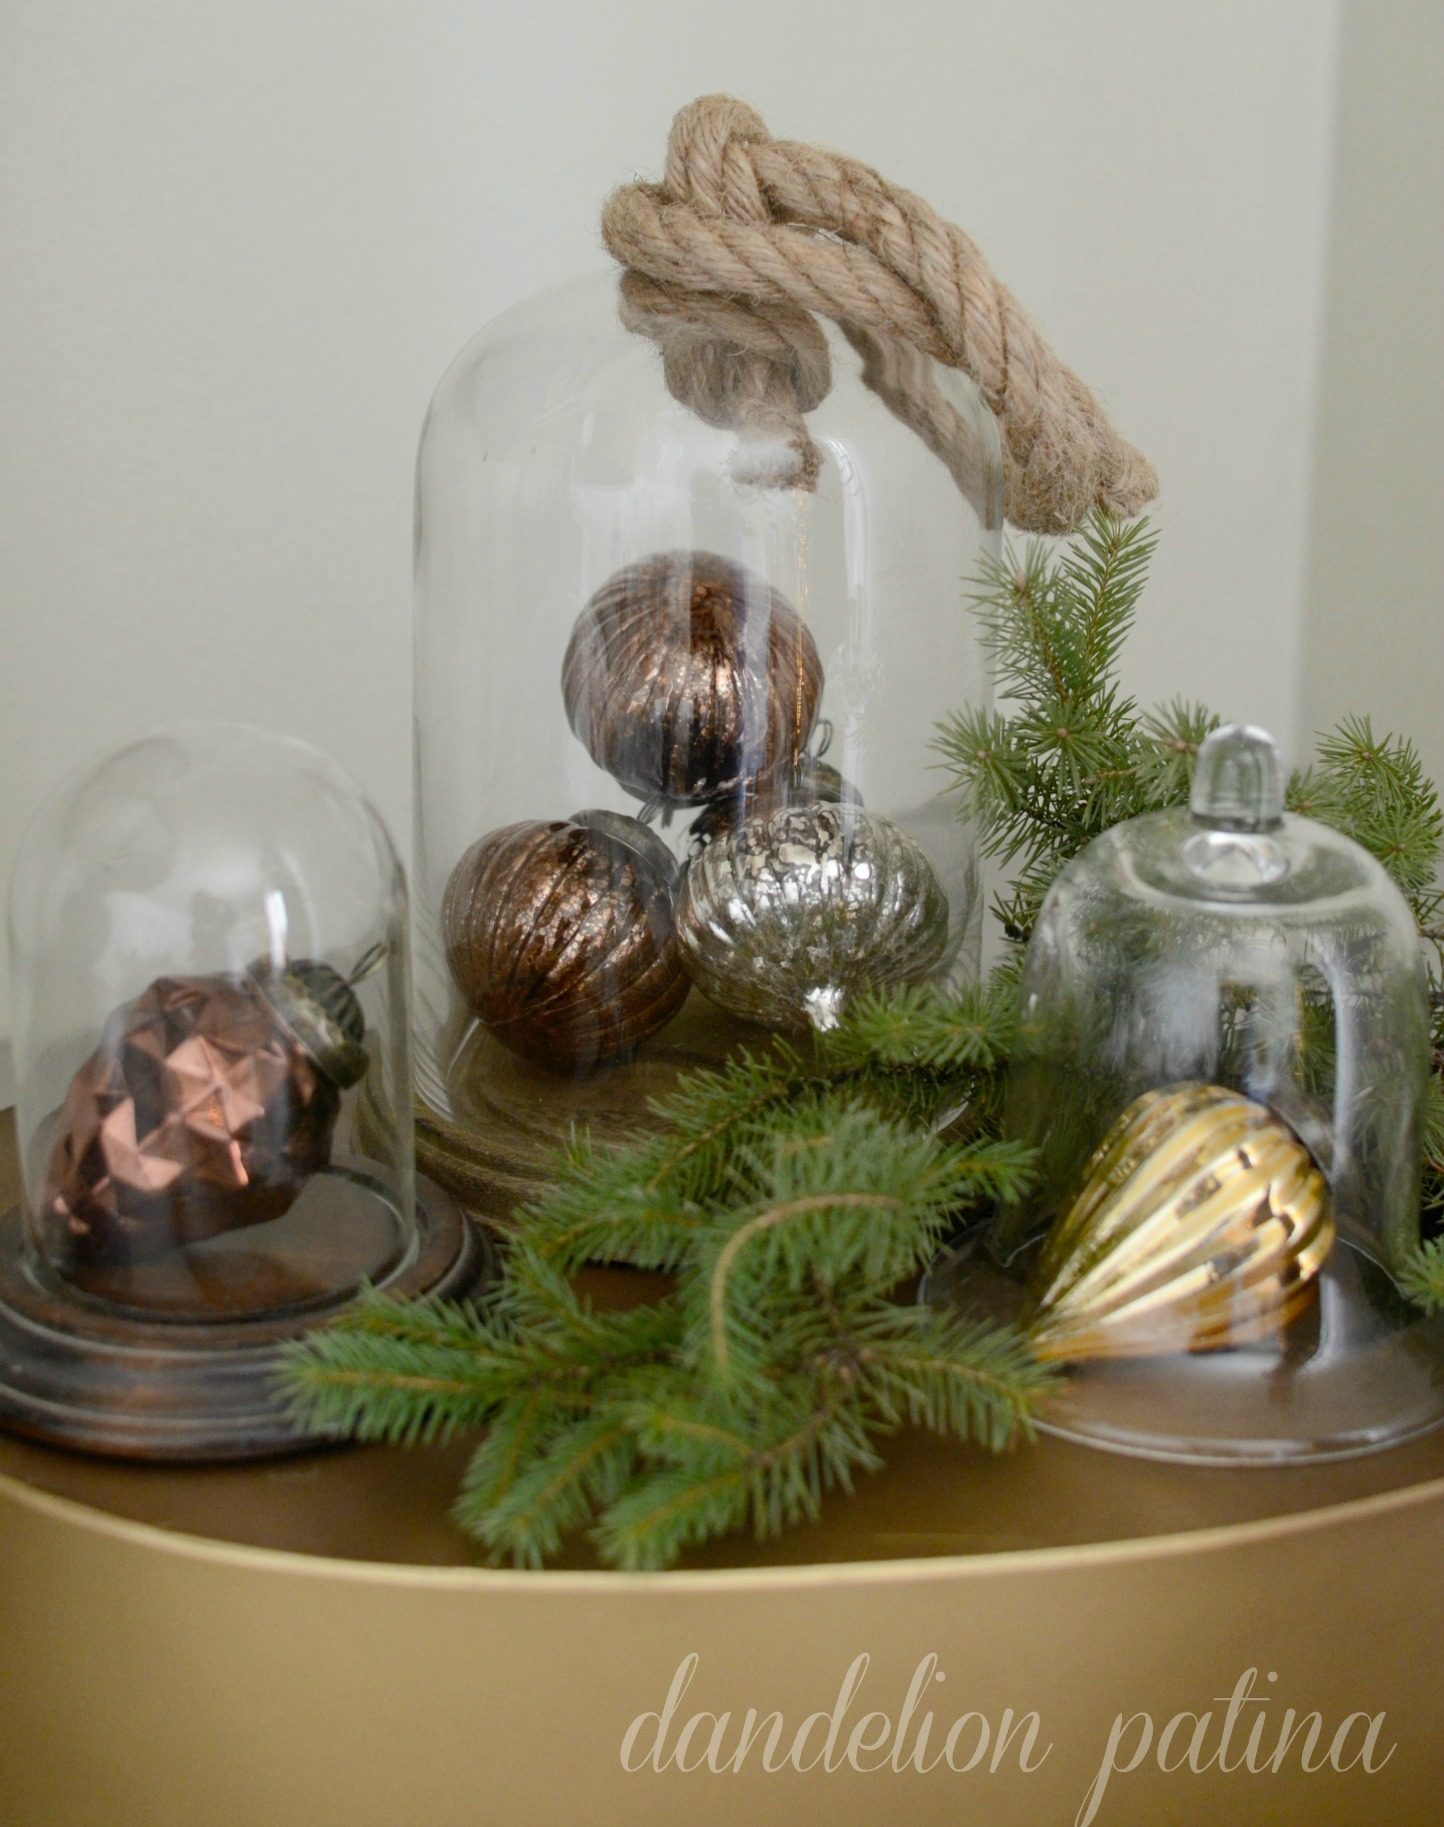 vintage ornaments in cloche